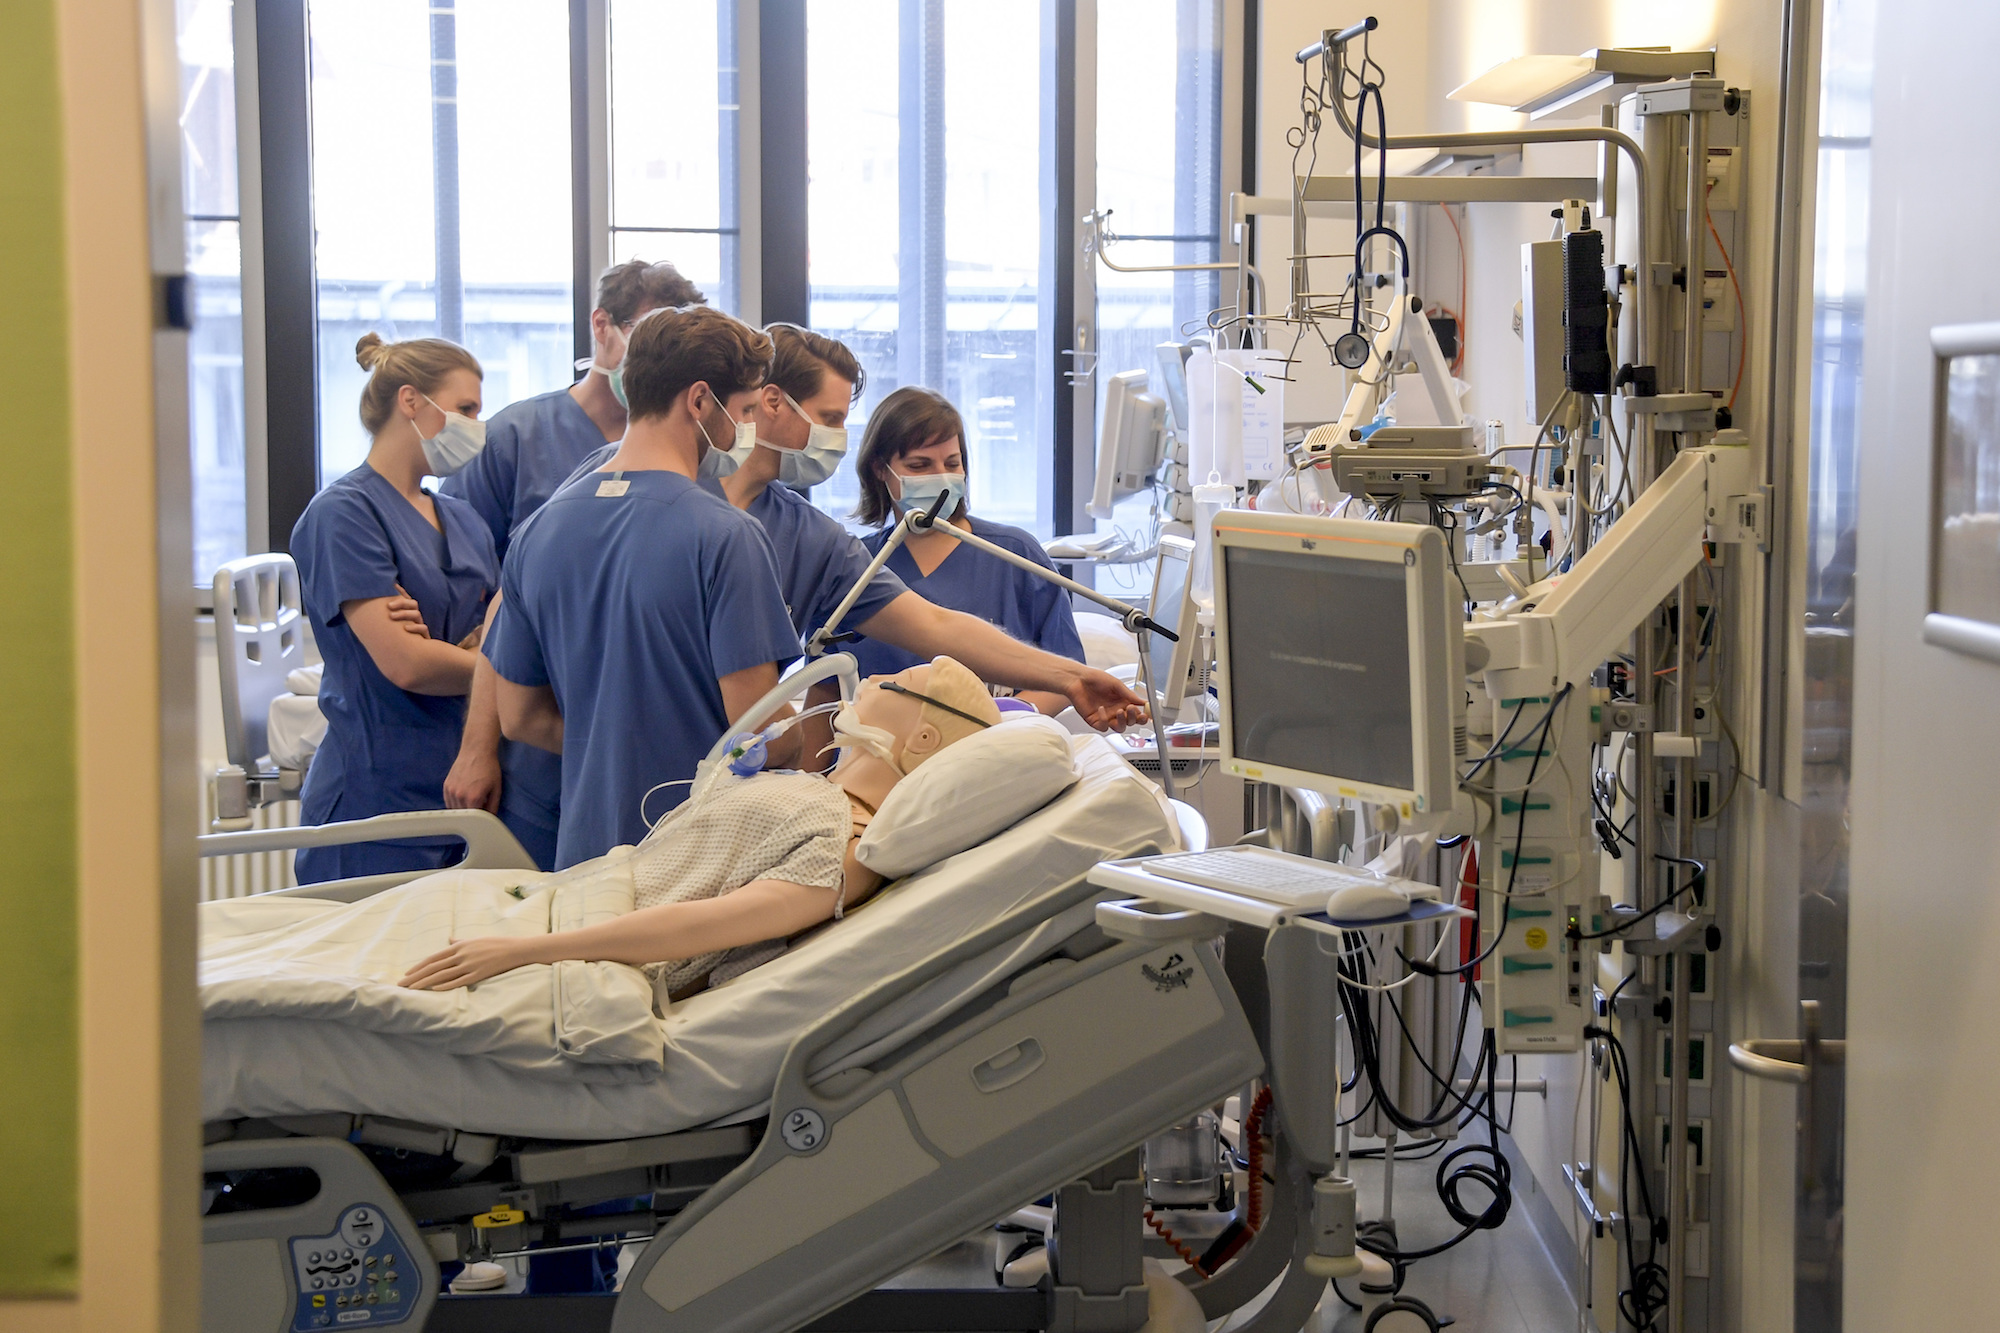 Most COVID-19 patients placed on ventilators die, NY study shows